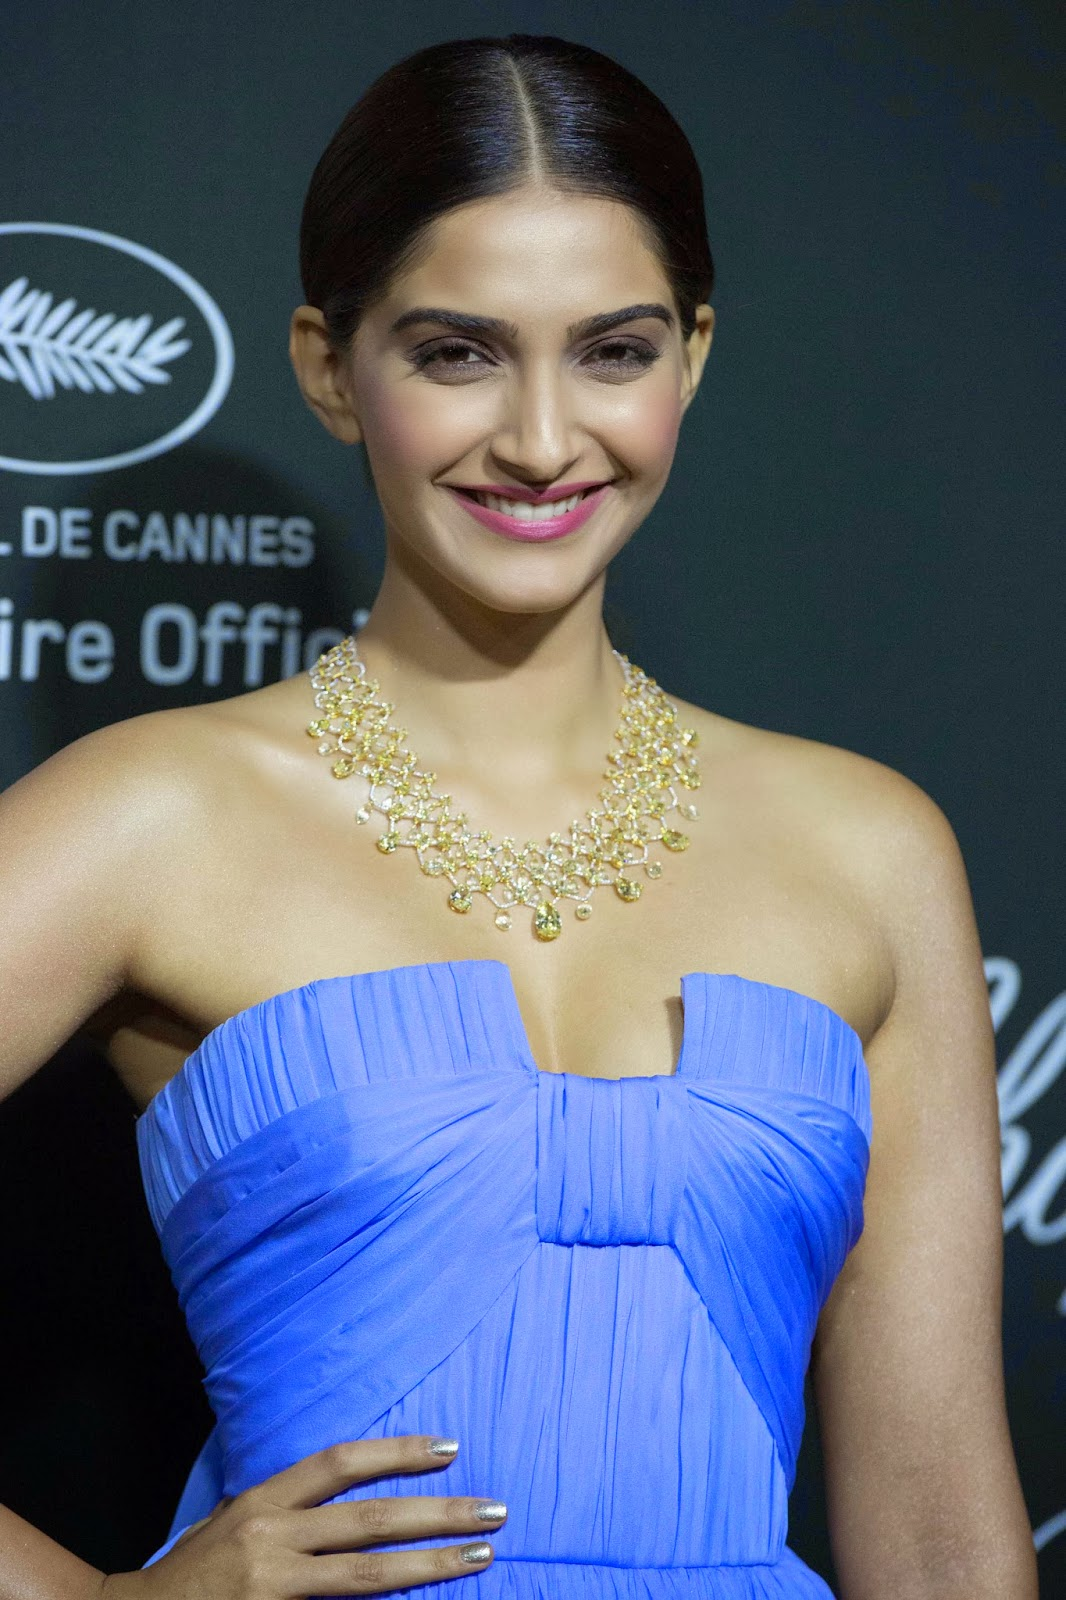 Cannes 2014, Sonam Kapoor, Chophard, yellow and white diamonds